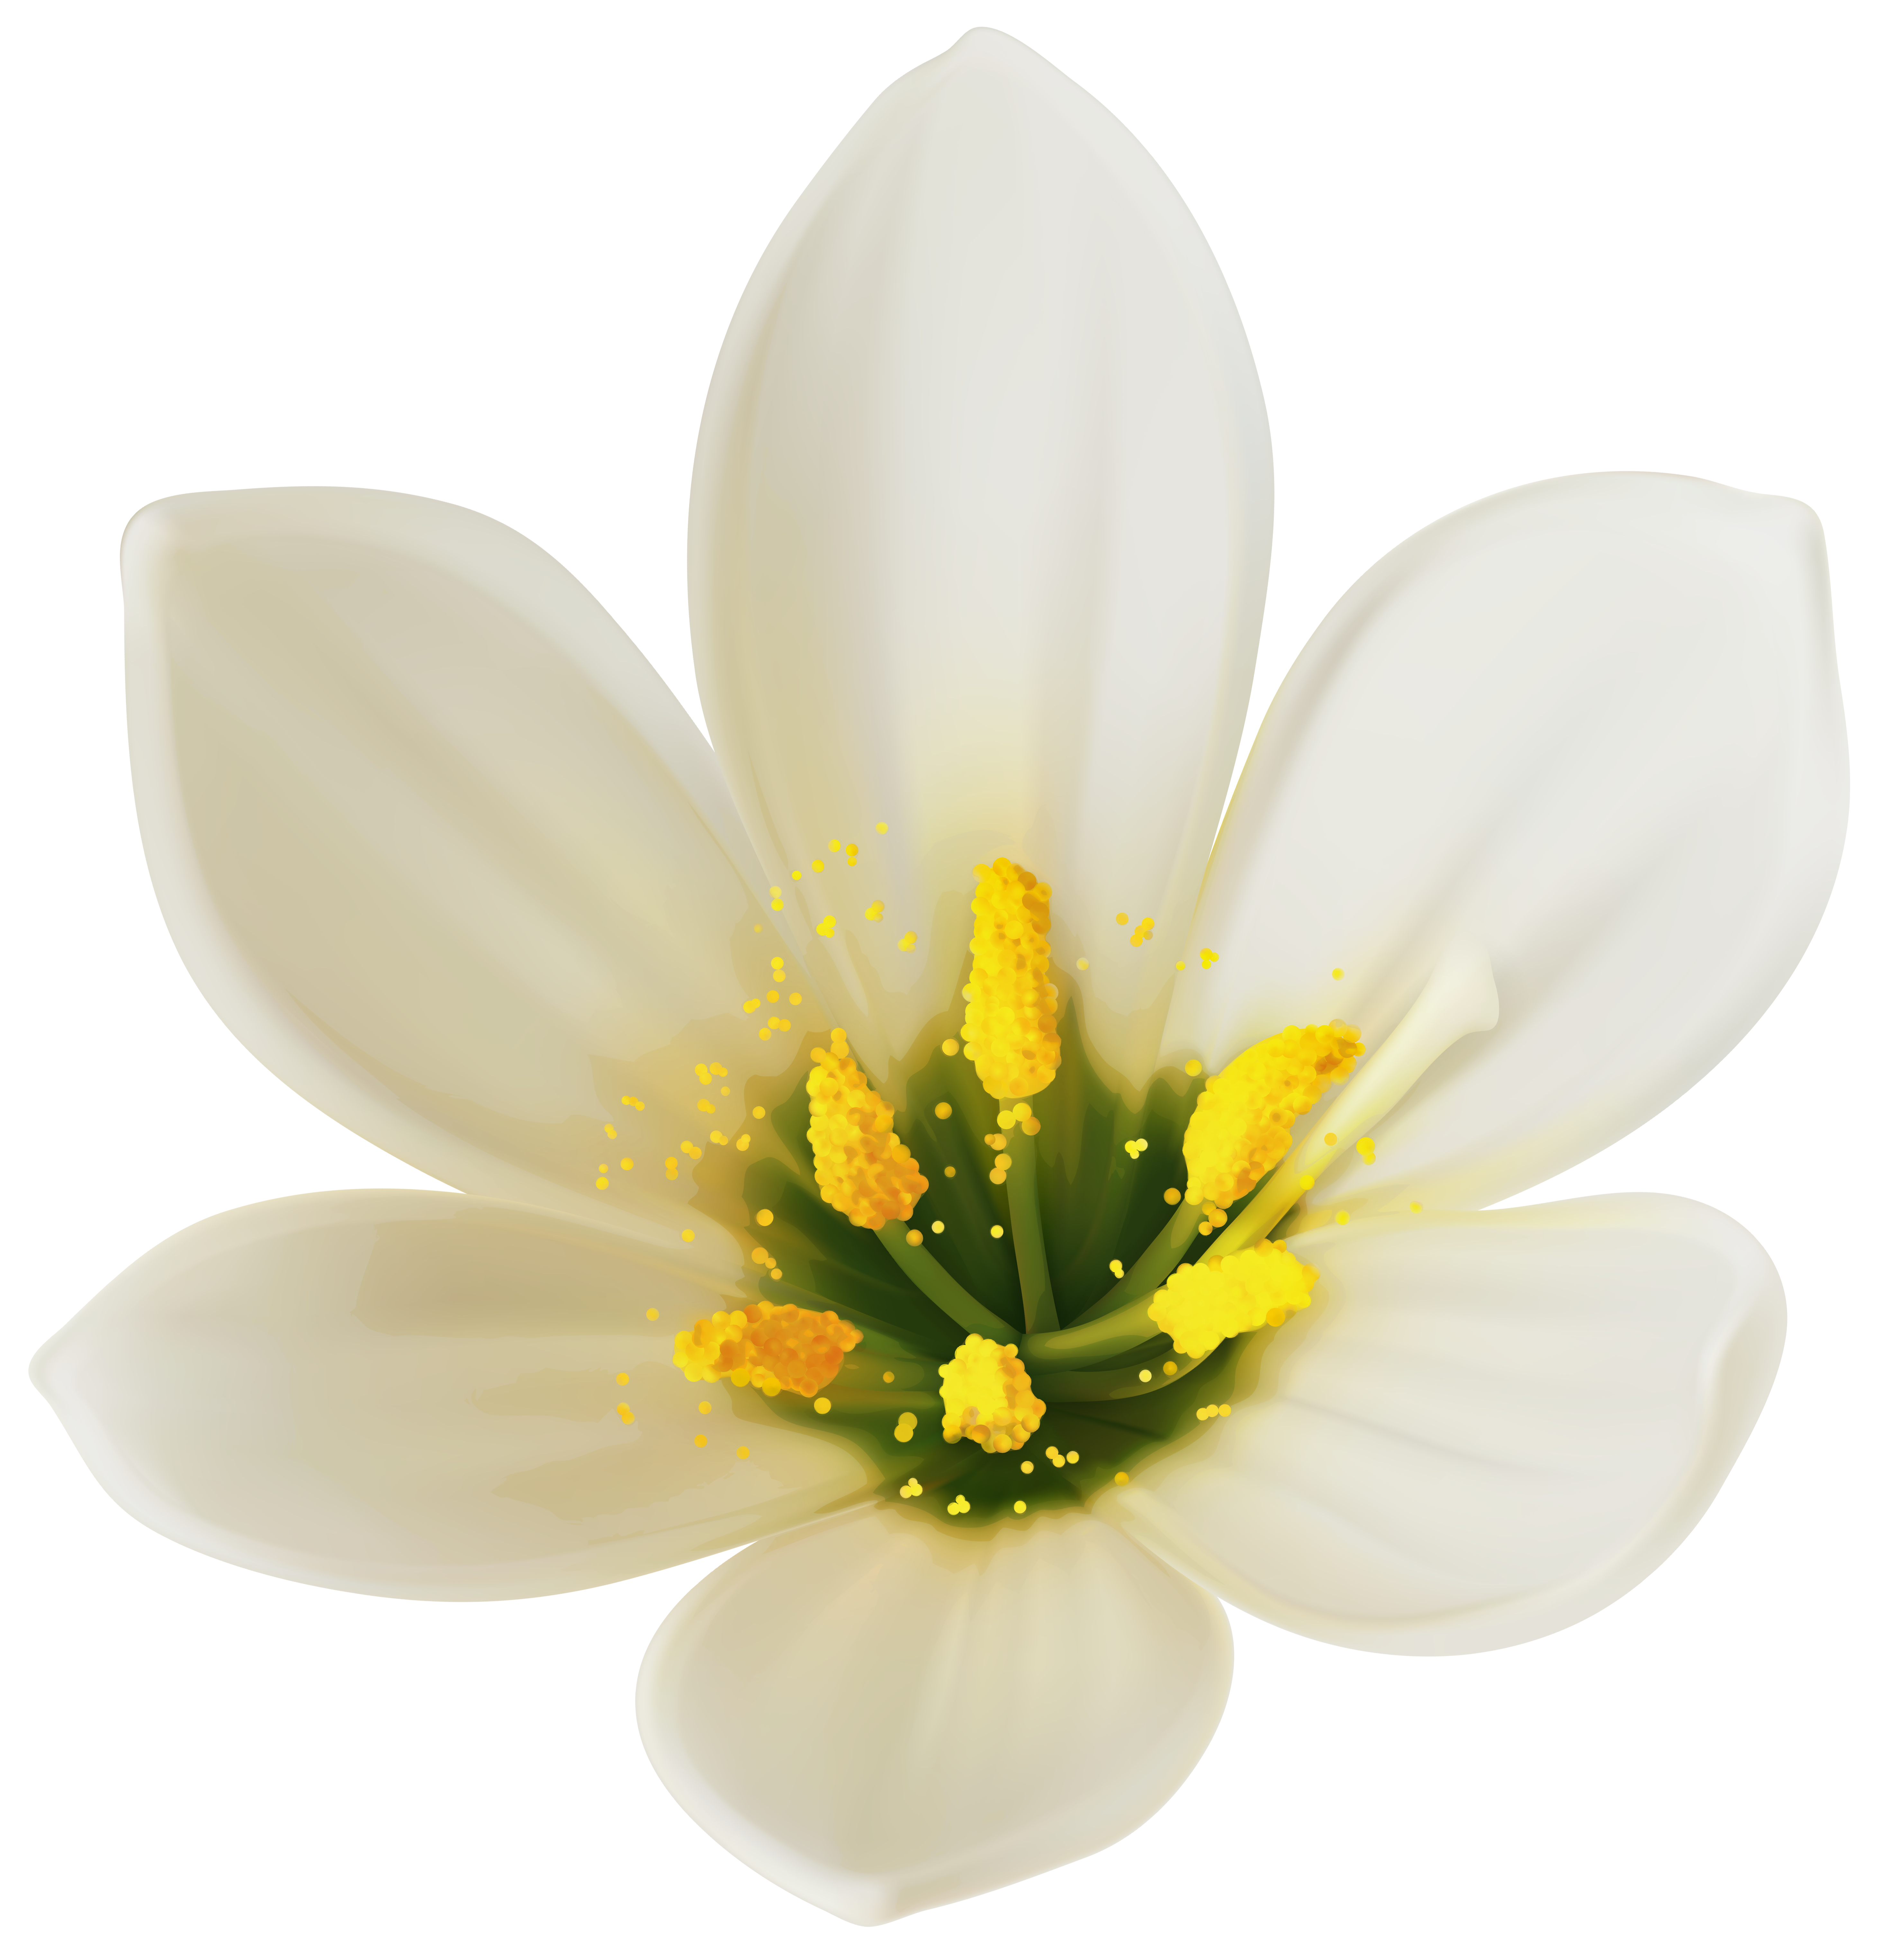 Free photo white flower white plants flower free download white flower png clipart image gallery yopriceville high mightylinksfo